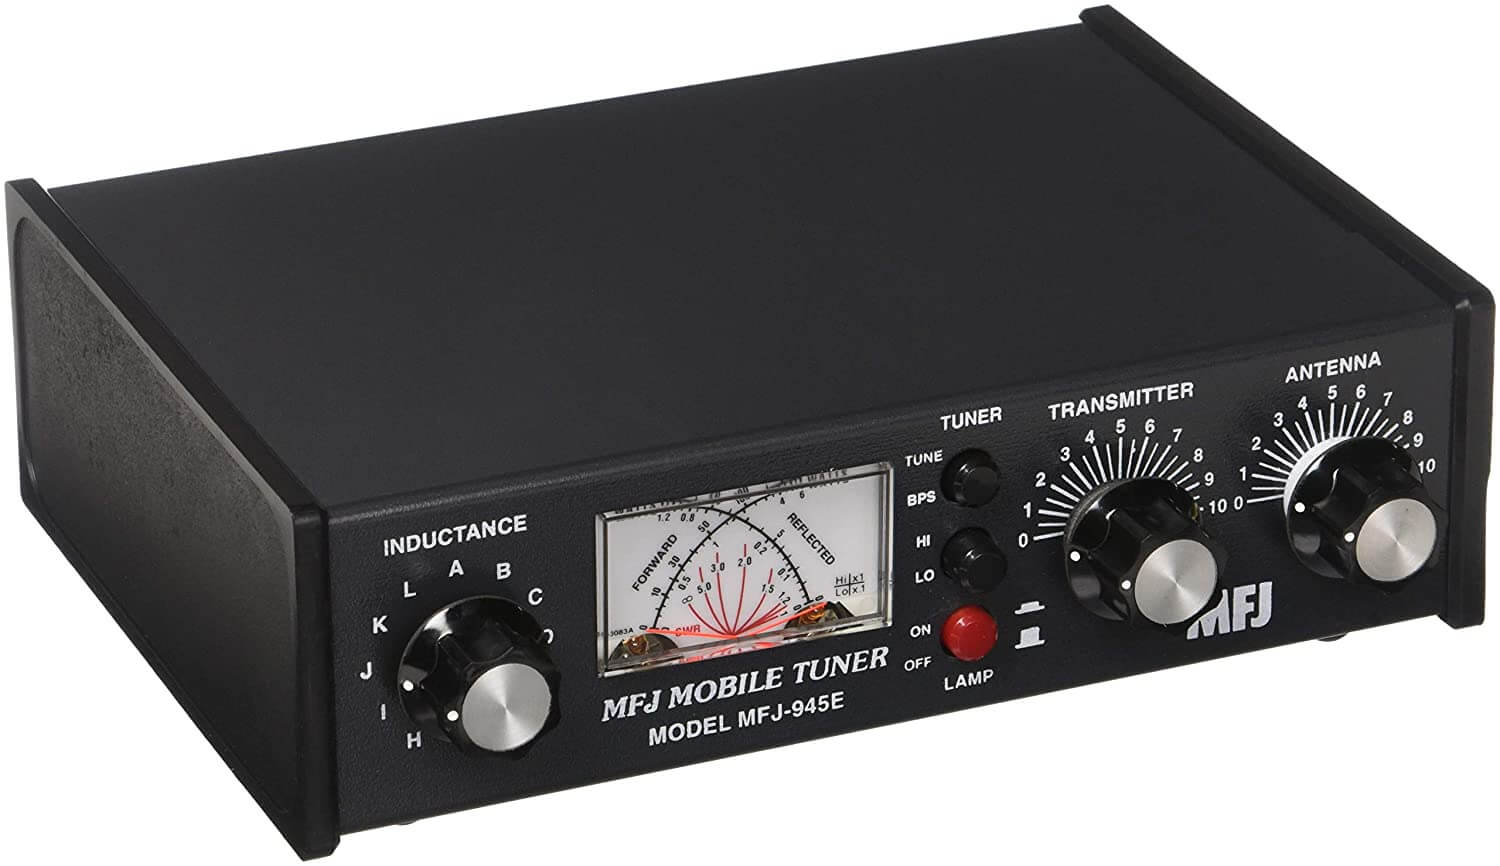 HF Antenna Tuner for Amateur Radio Transceivers: Amazon.in: Electronics